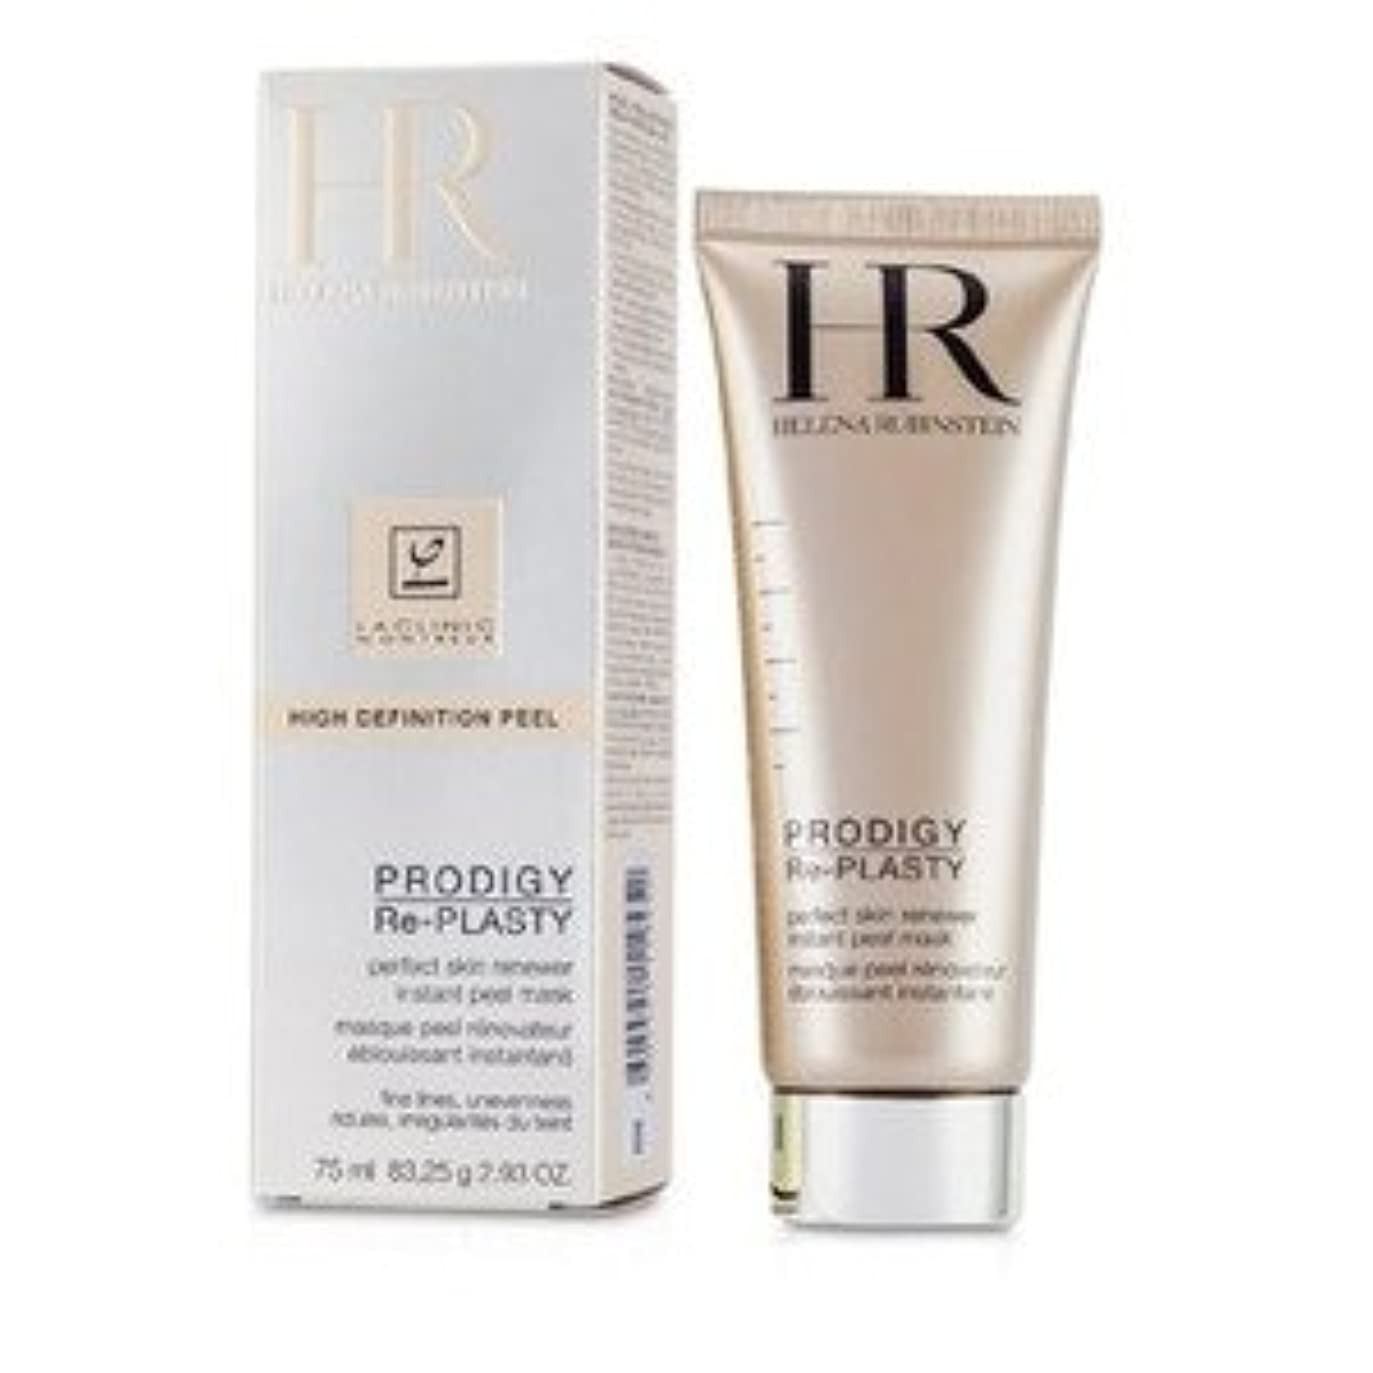 仲間短くする安全なHelena Rubinstein(ヘレナ?ルビンスタイン) Prodigy Re-Plasty High Definition Peel Perfect Skin Renewer Instant Peel Mask 75ml...